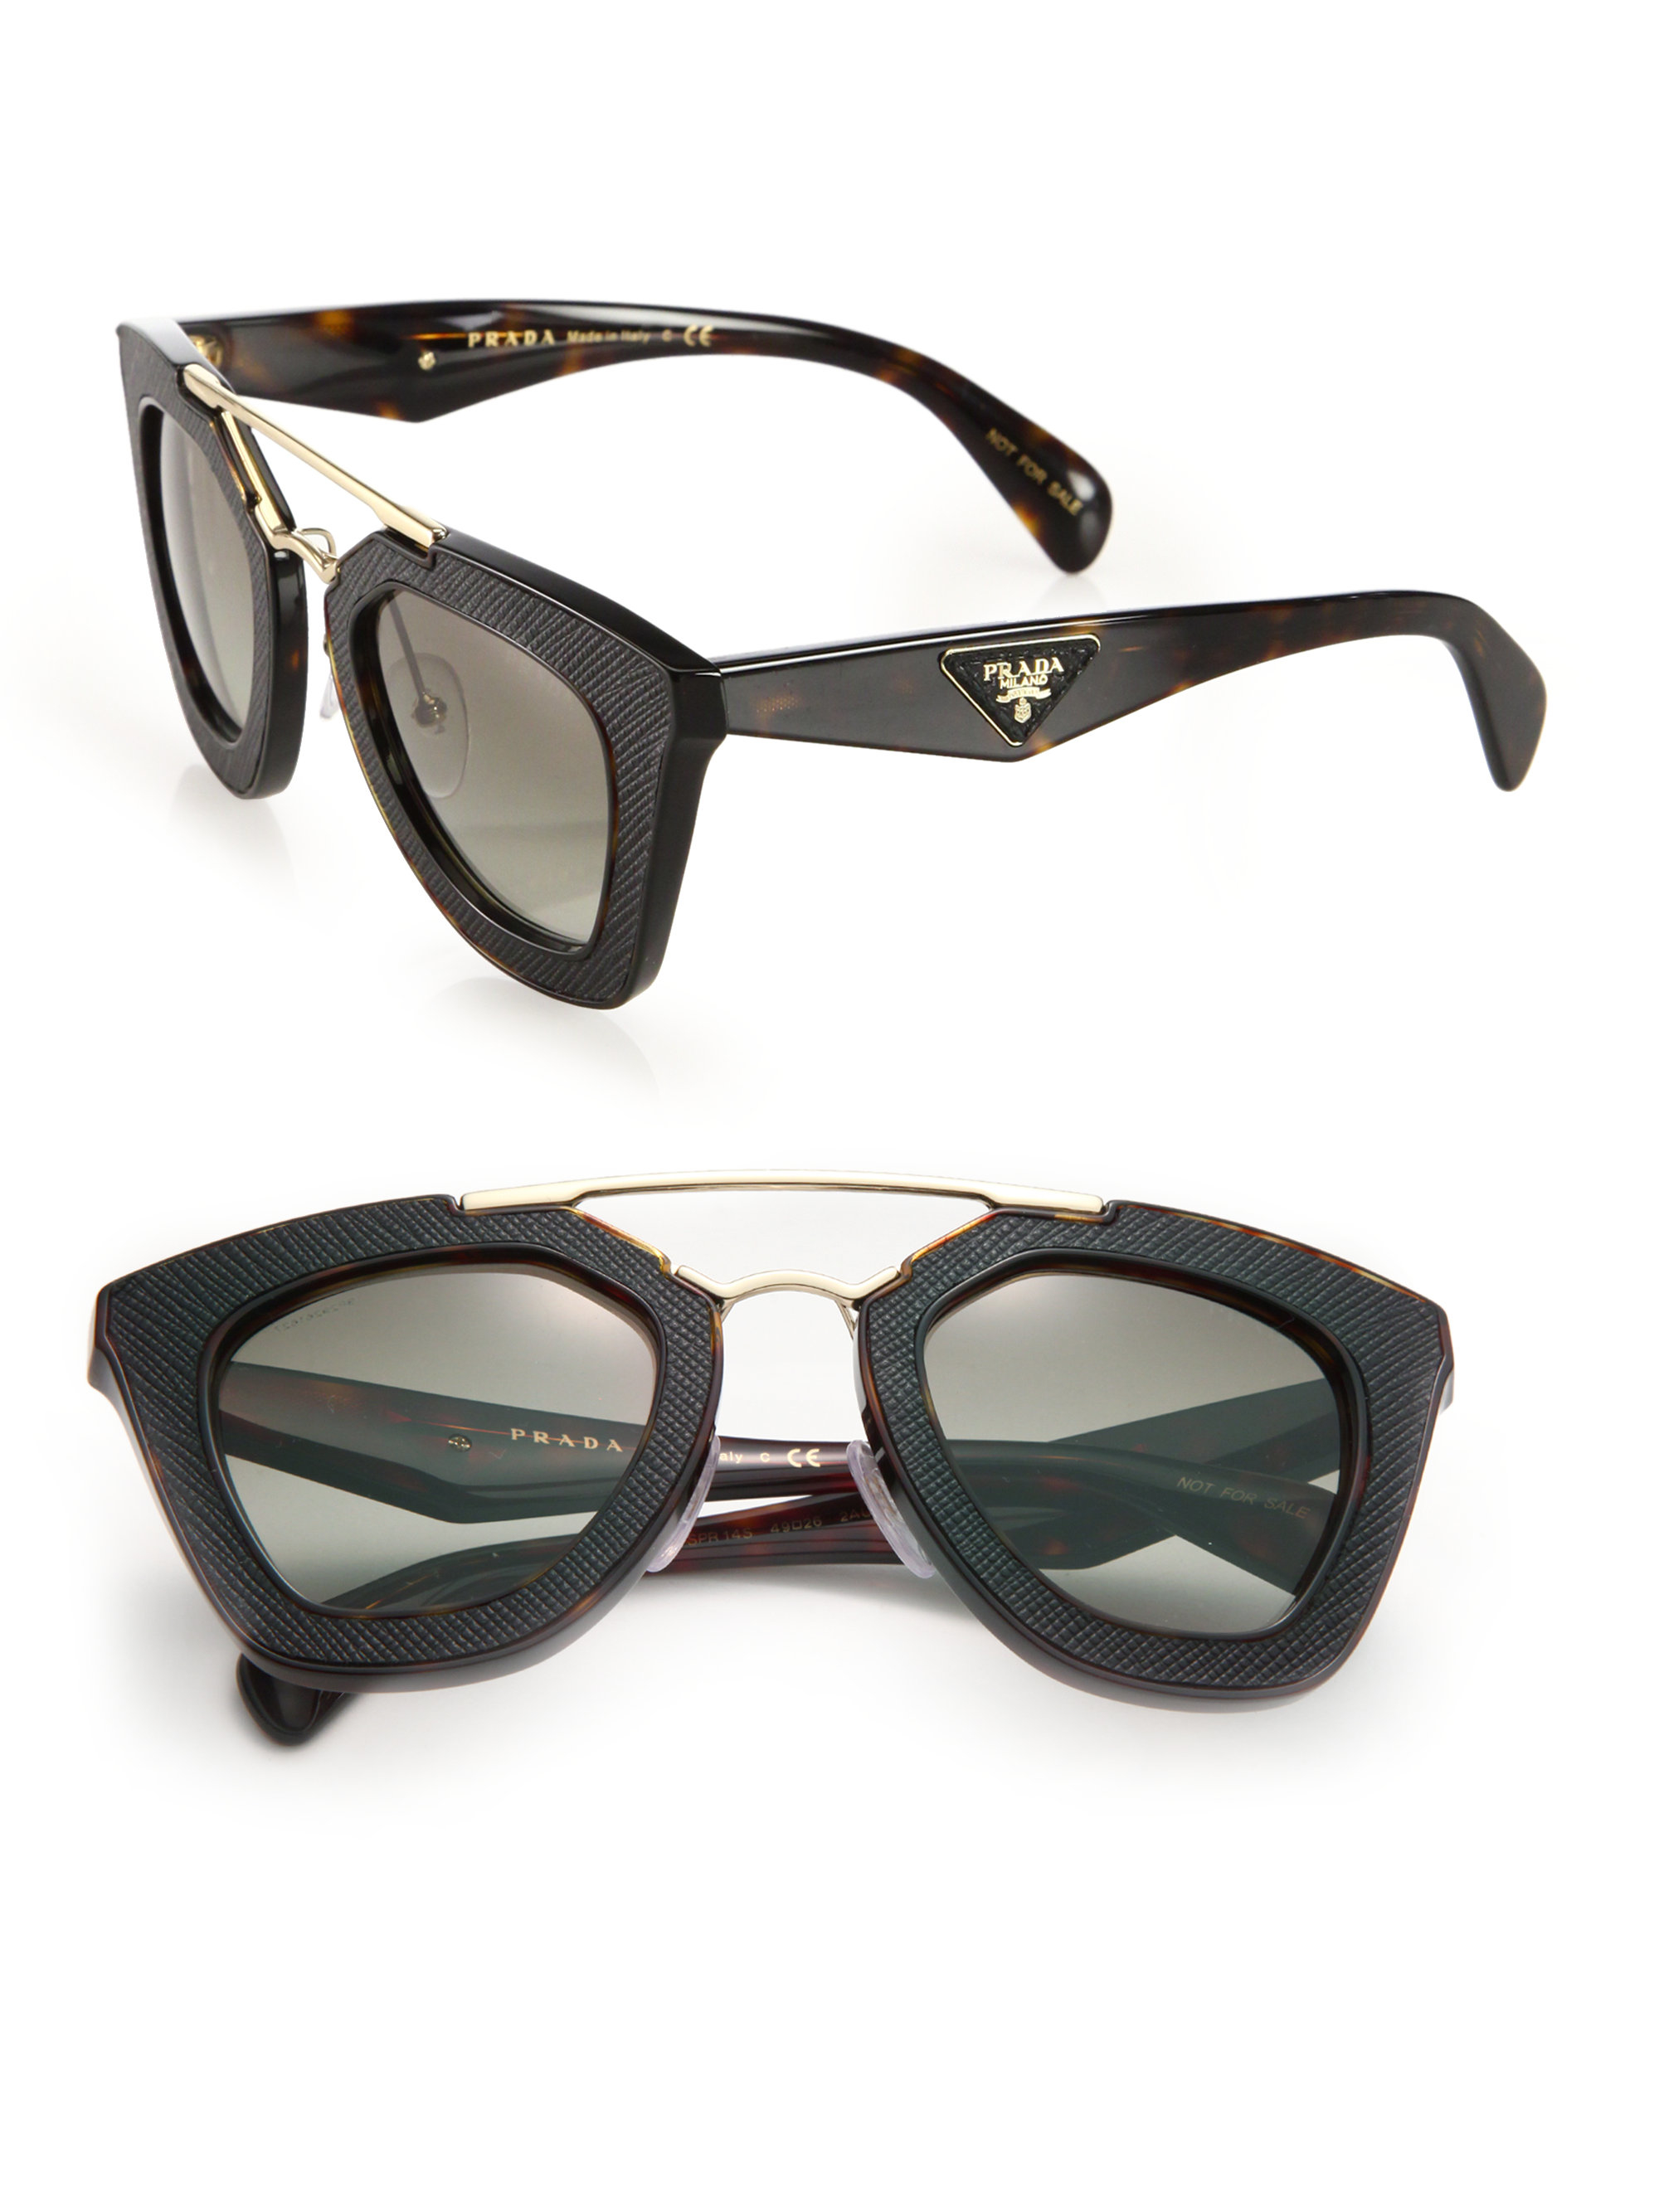 521348f51476 Lyst - Prada Ornate 14ss 49mm Saffiano Leather Sunglasses in Black